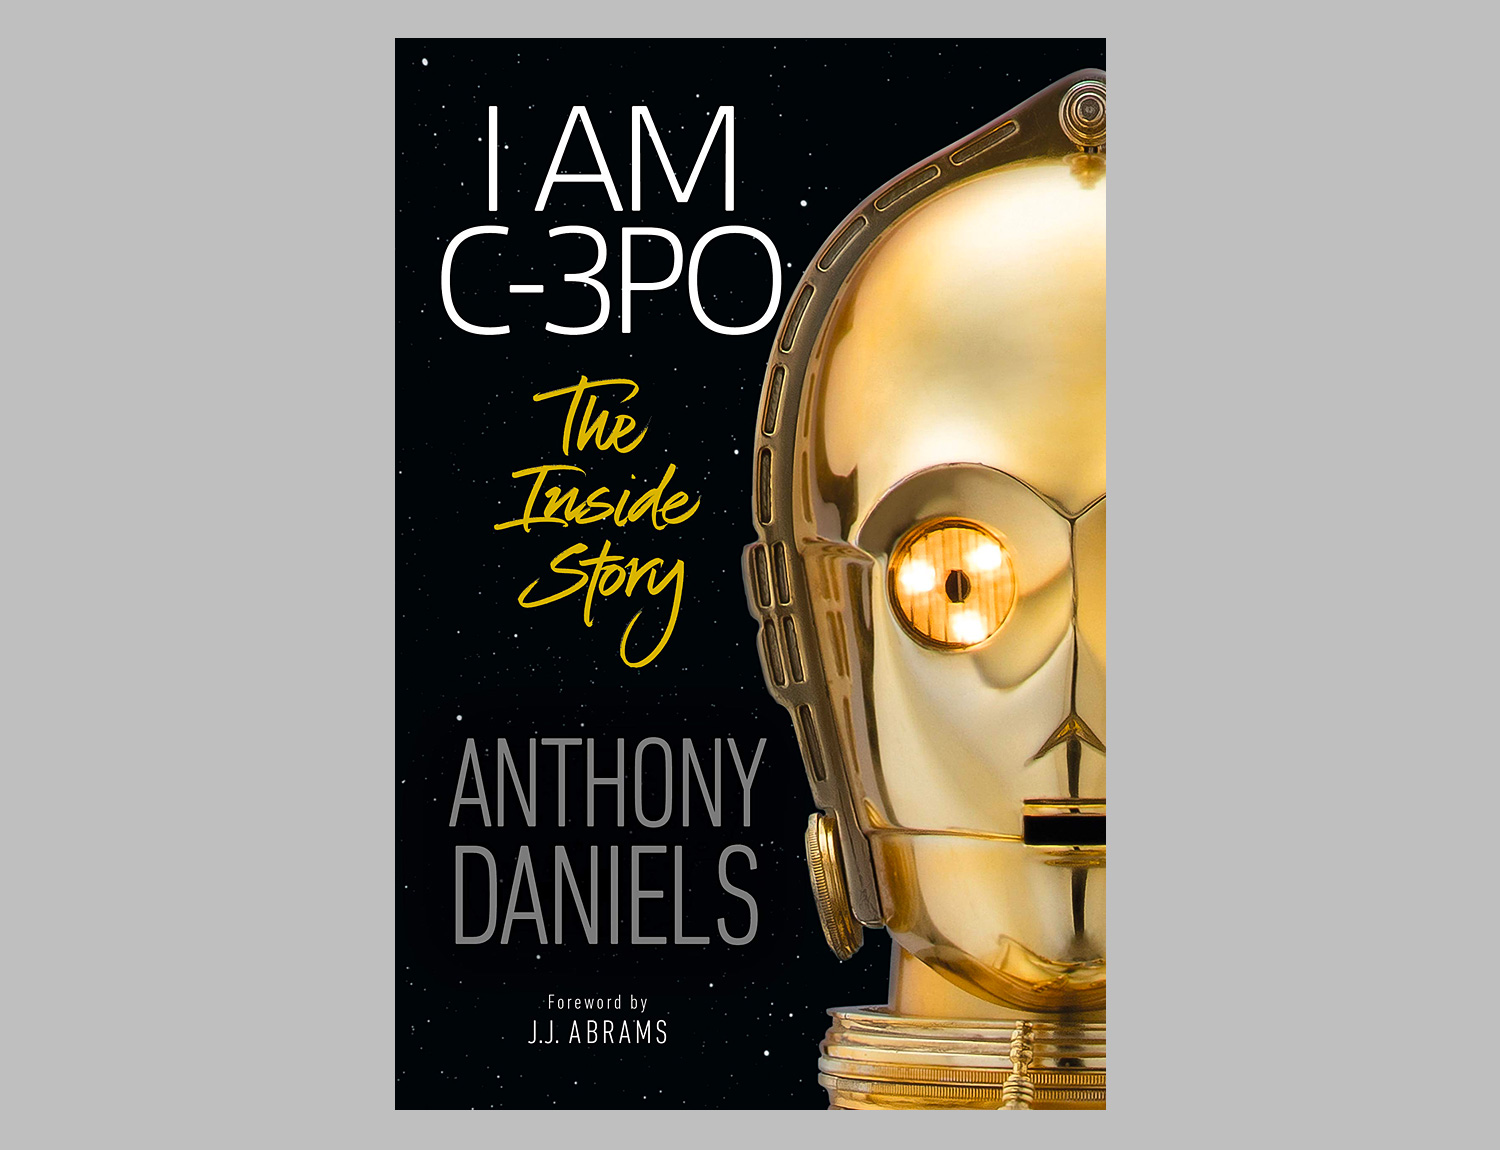 I Am C-3PO: The Inside Story at werd.com